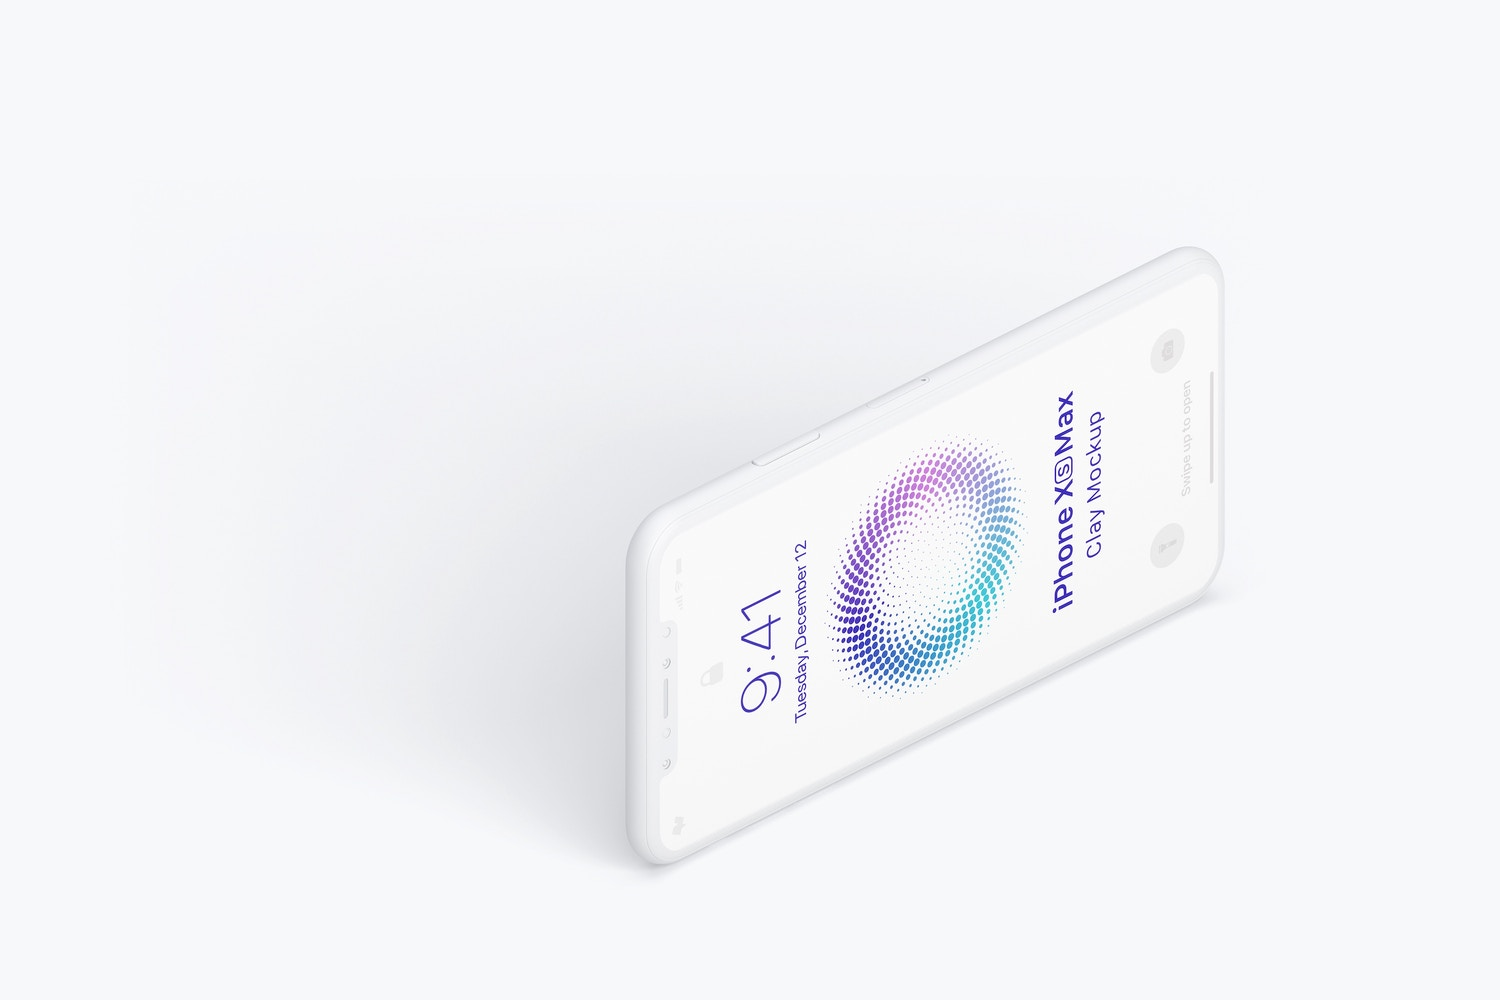 Isometric Clay iPhone XS Max Mockup, Left View 03